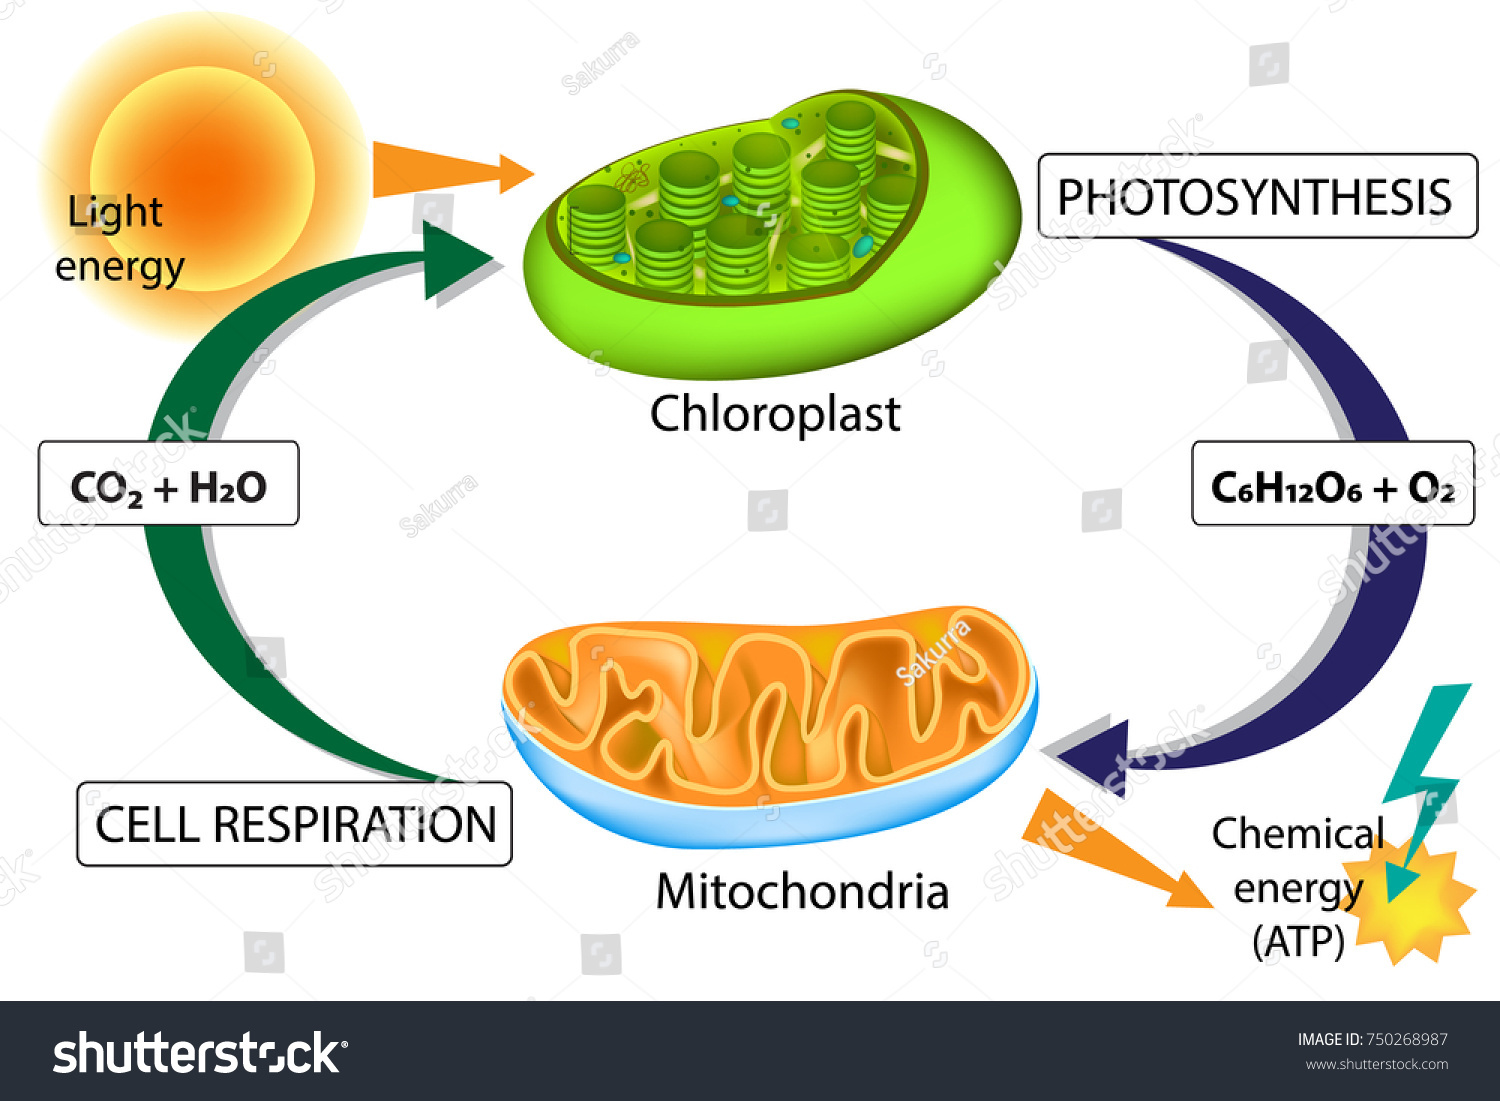 Photosynthesis Cellular Respiration Chloroplast